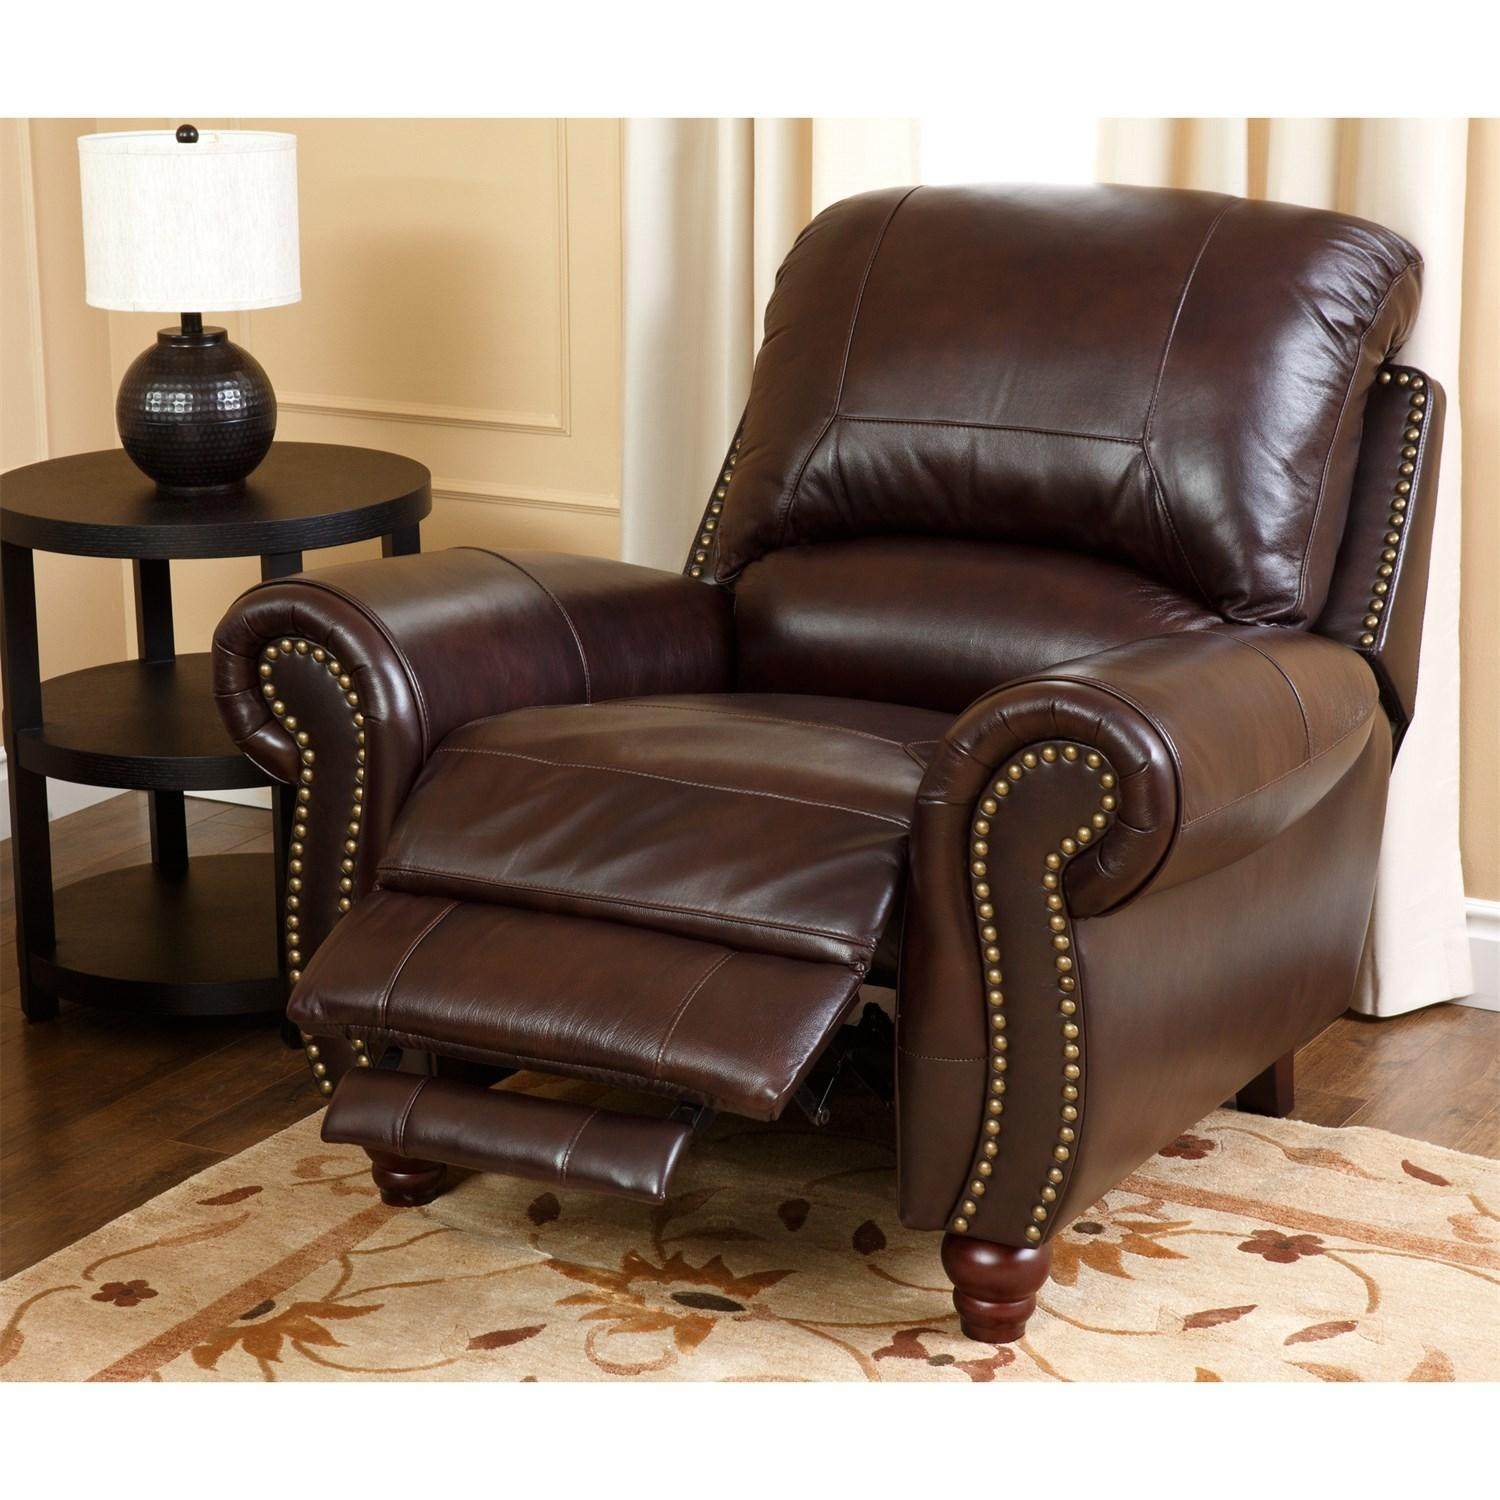 Abbyson Living Ch 8857 Brg 1 Canterbury Leather Pushback Reclining Pertaining To Abbyson Recliners (Image 6 of 20)